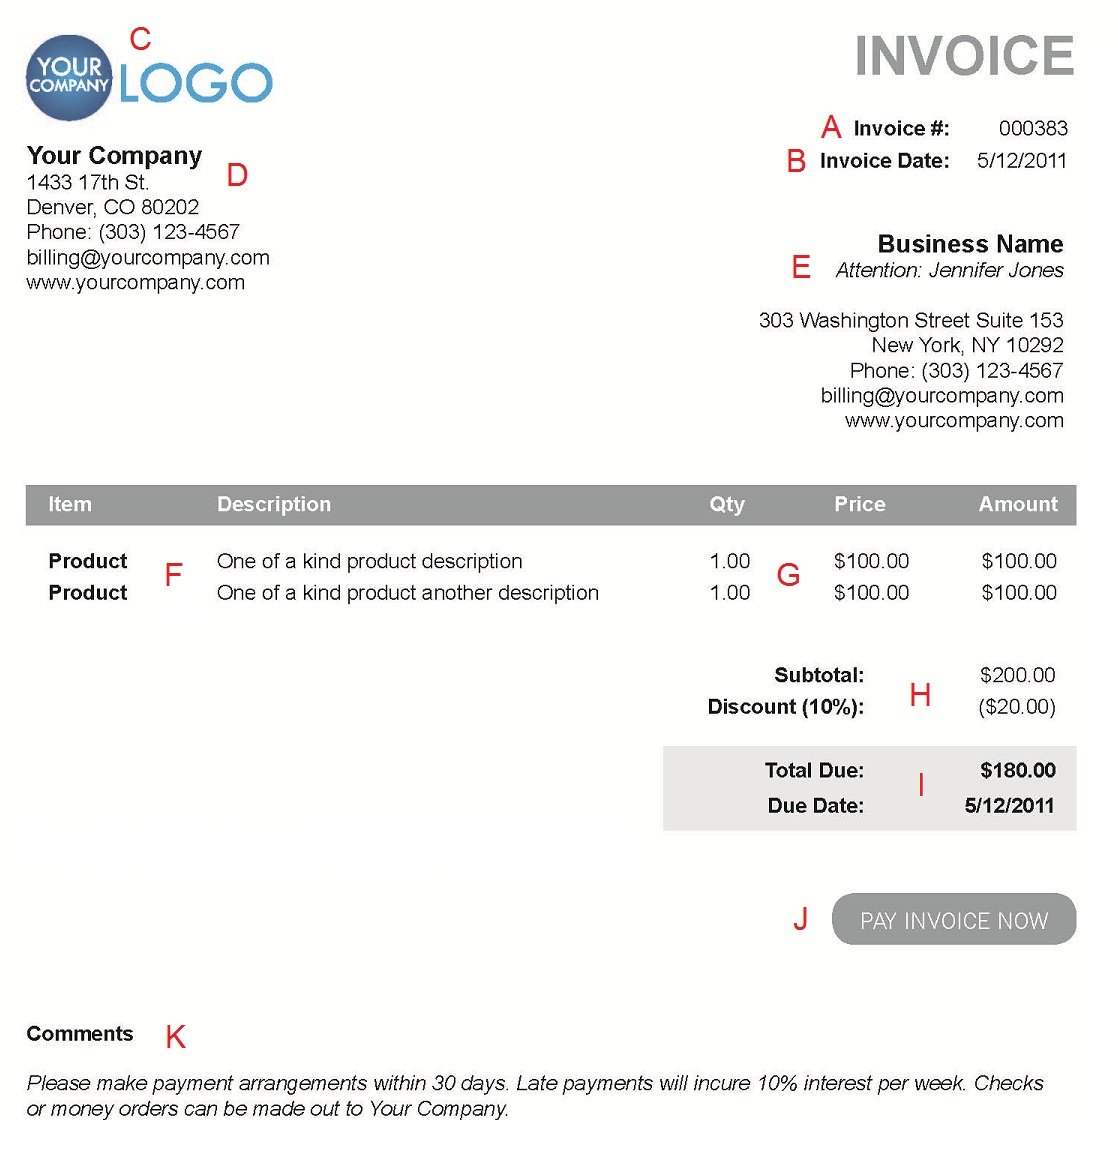 Centralasianshepherdus  Scenic The  Different Sections Of An Electronic Payment Invoice With Engaging A  With Delightful Format For Proforma Invoice Also Free Invoice App For Ipad In Addition Expenses Invoice And Templates Invoices As Well As Invoice Quotation Additionally Reconciliation Of Invoices From Paysimplecom With Centralasianshepherdus  Engaging The  Different Sections Of An Electronic Payment Invoice With Delightful A  And Scenic Format For Proforma Invoice Also Free Invoice App For Ipad In Addition Expenses Invoice From Paysimplecom